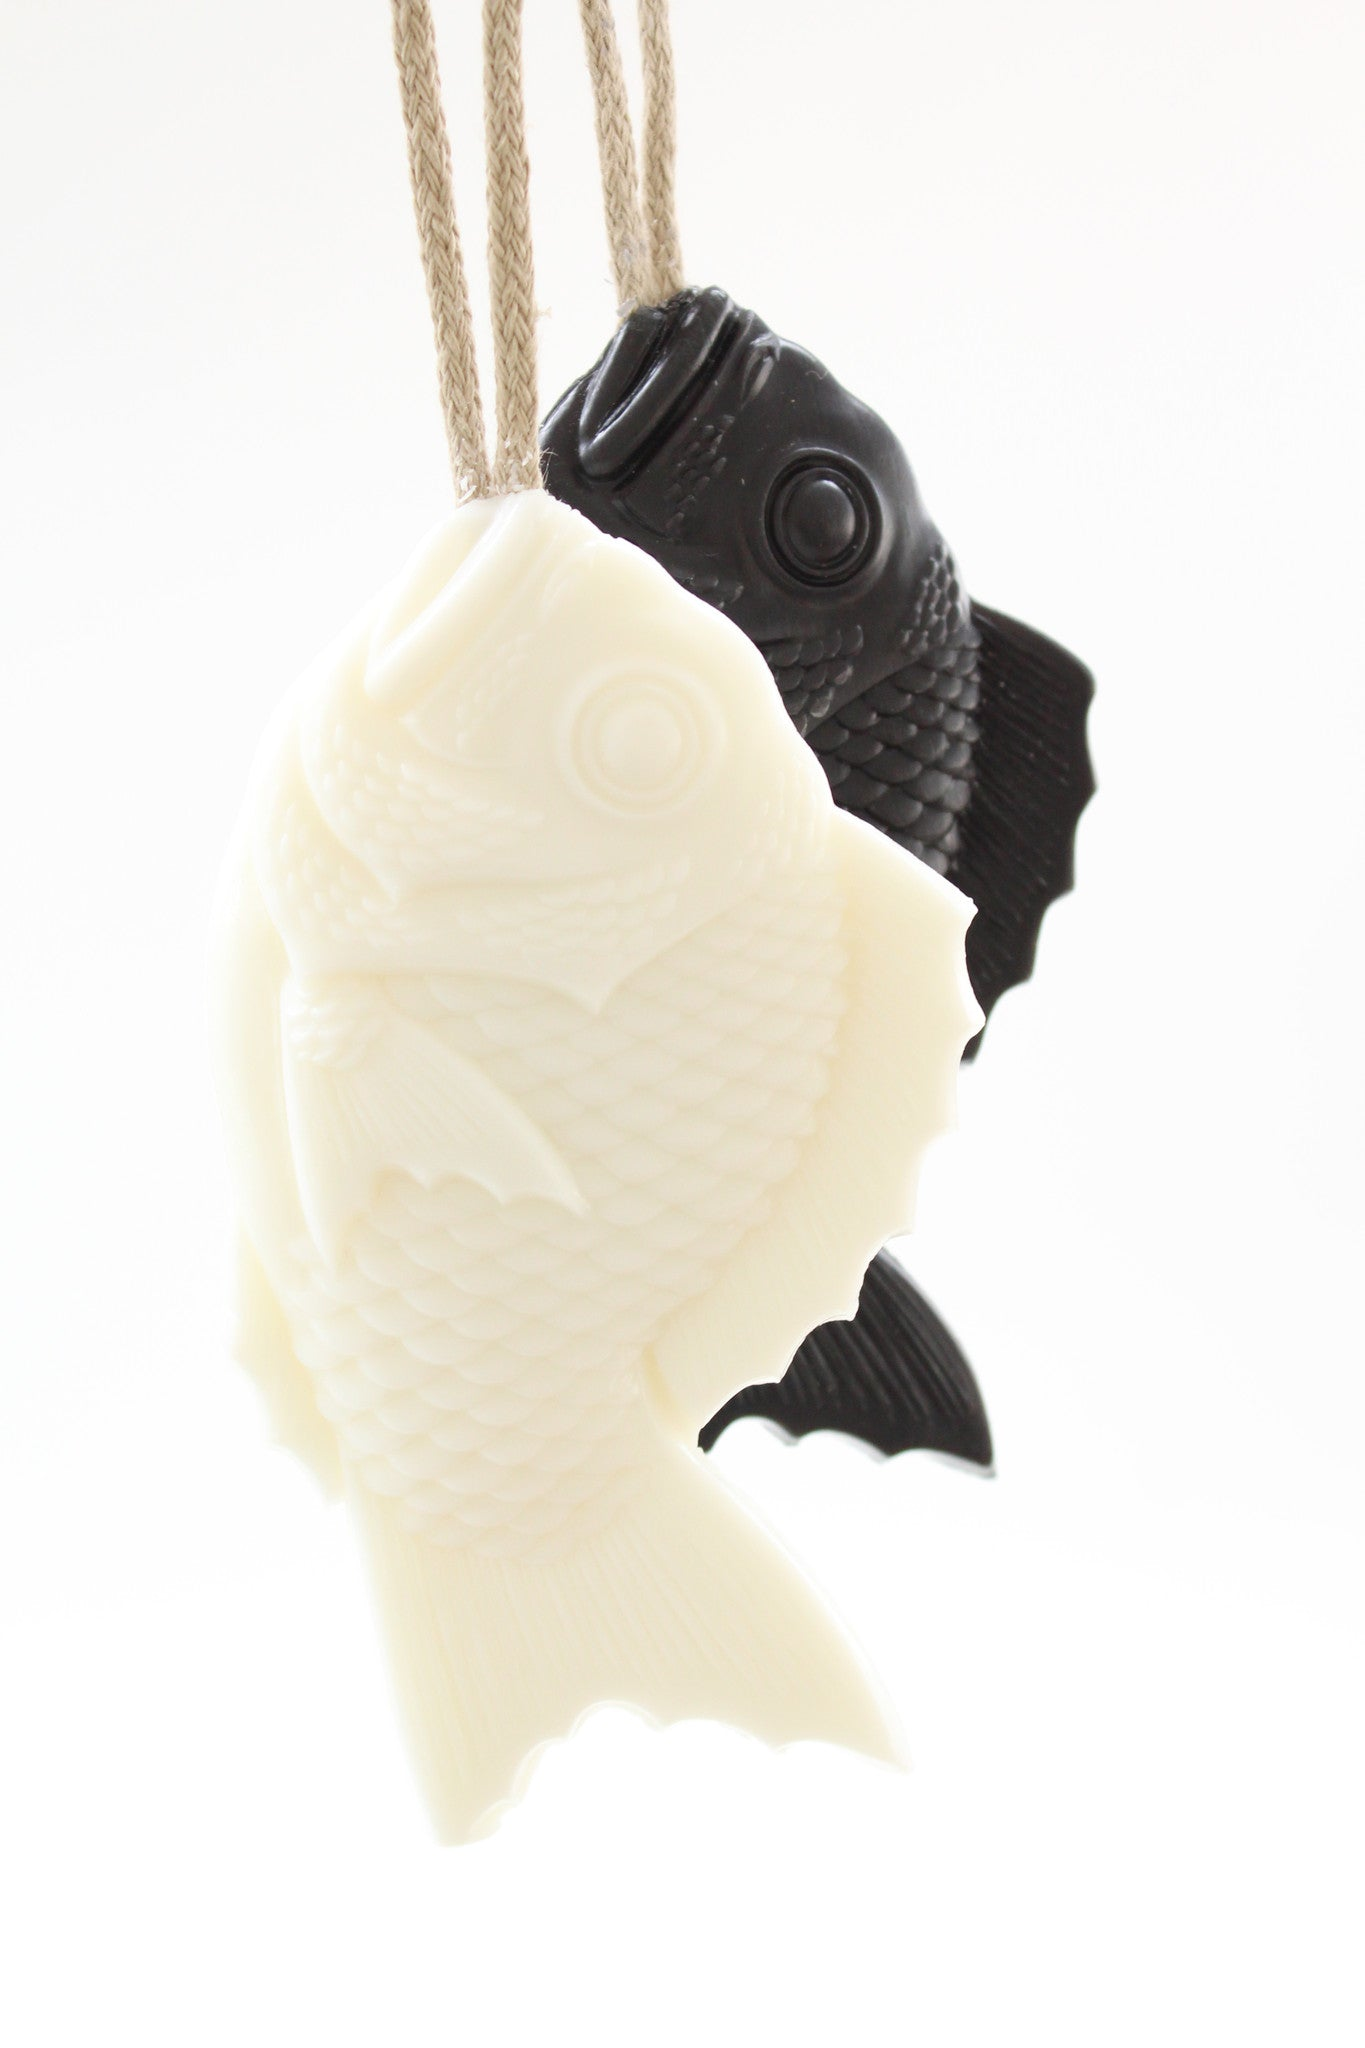 Japanese Fish Welcome Soap / Beklina